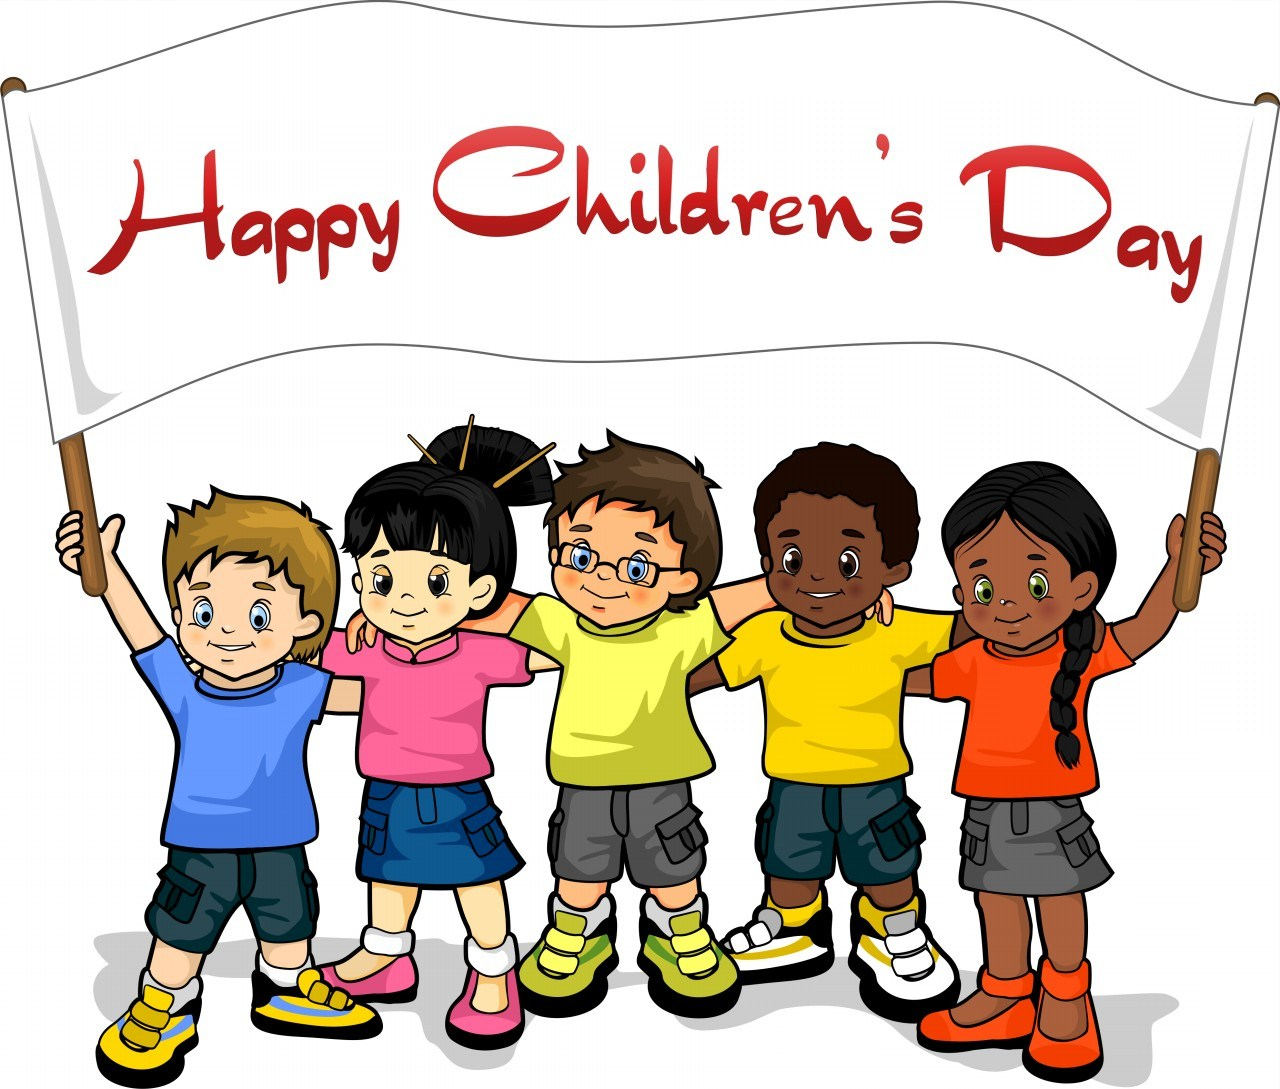 S live life in. Celebration clipart children day